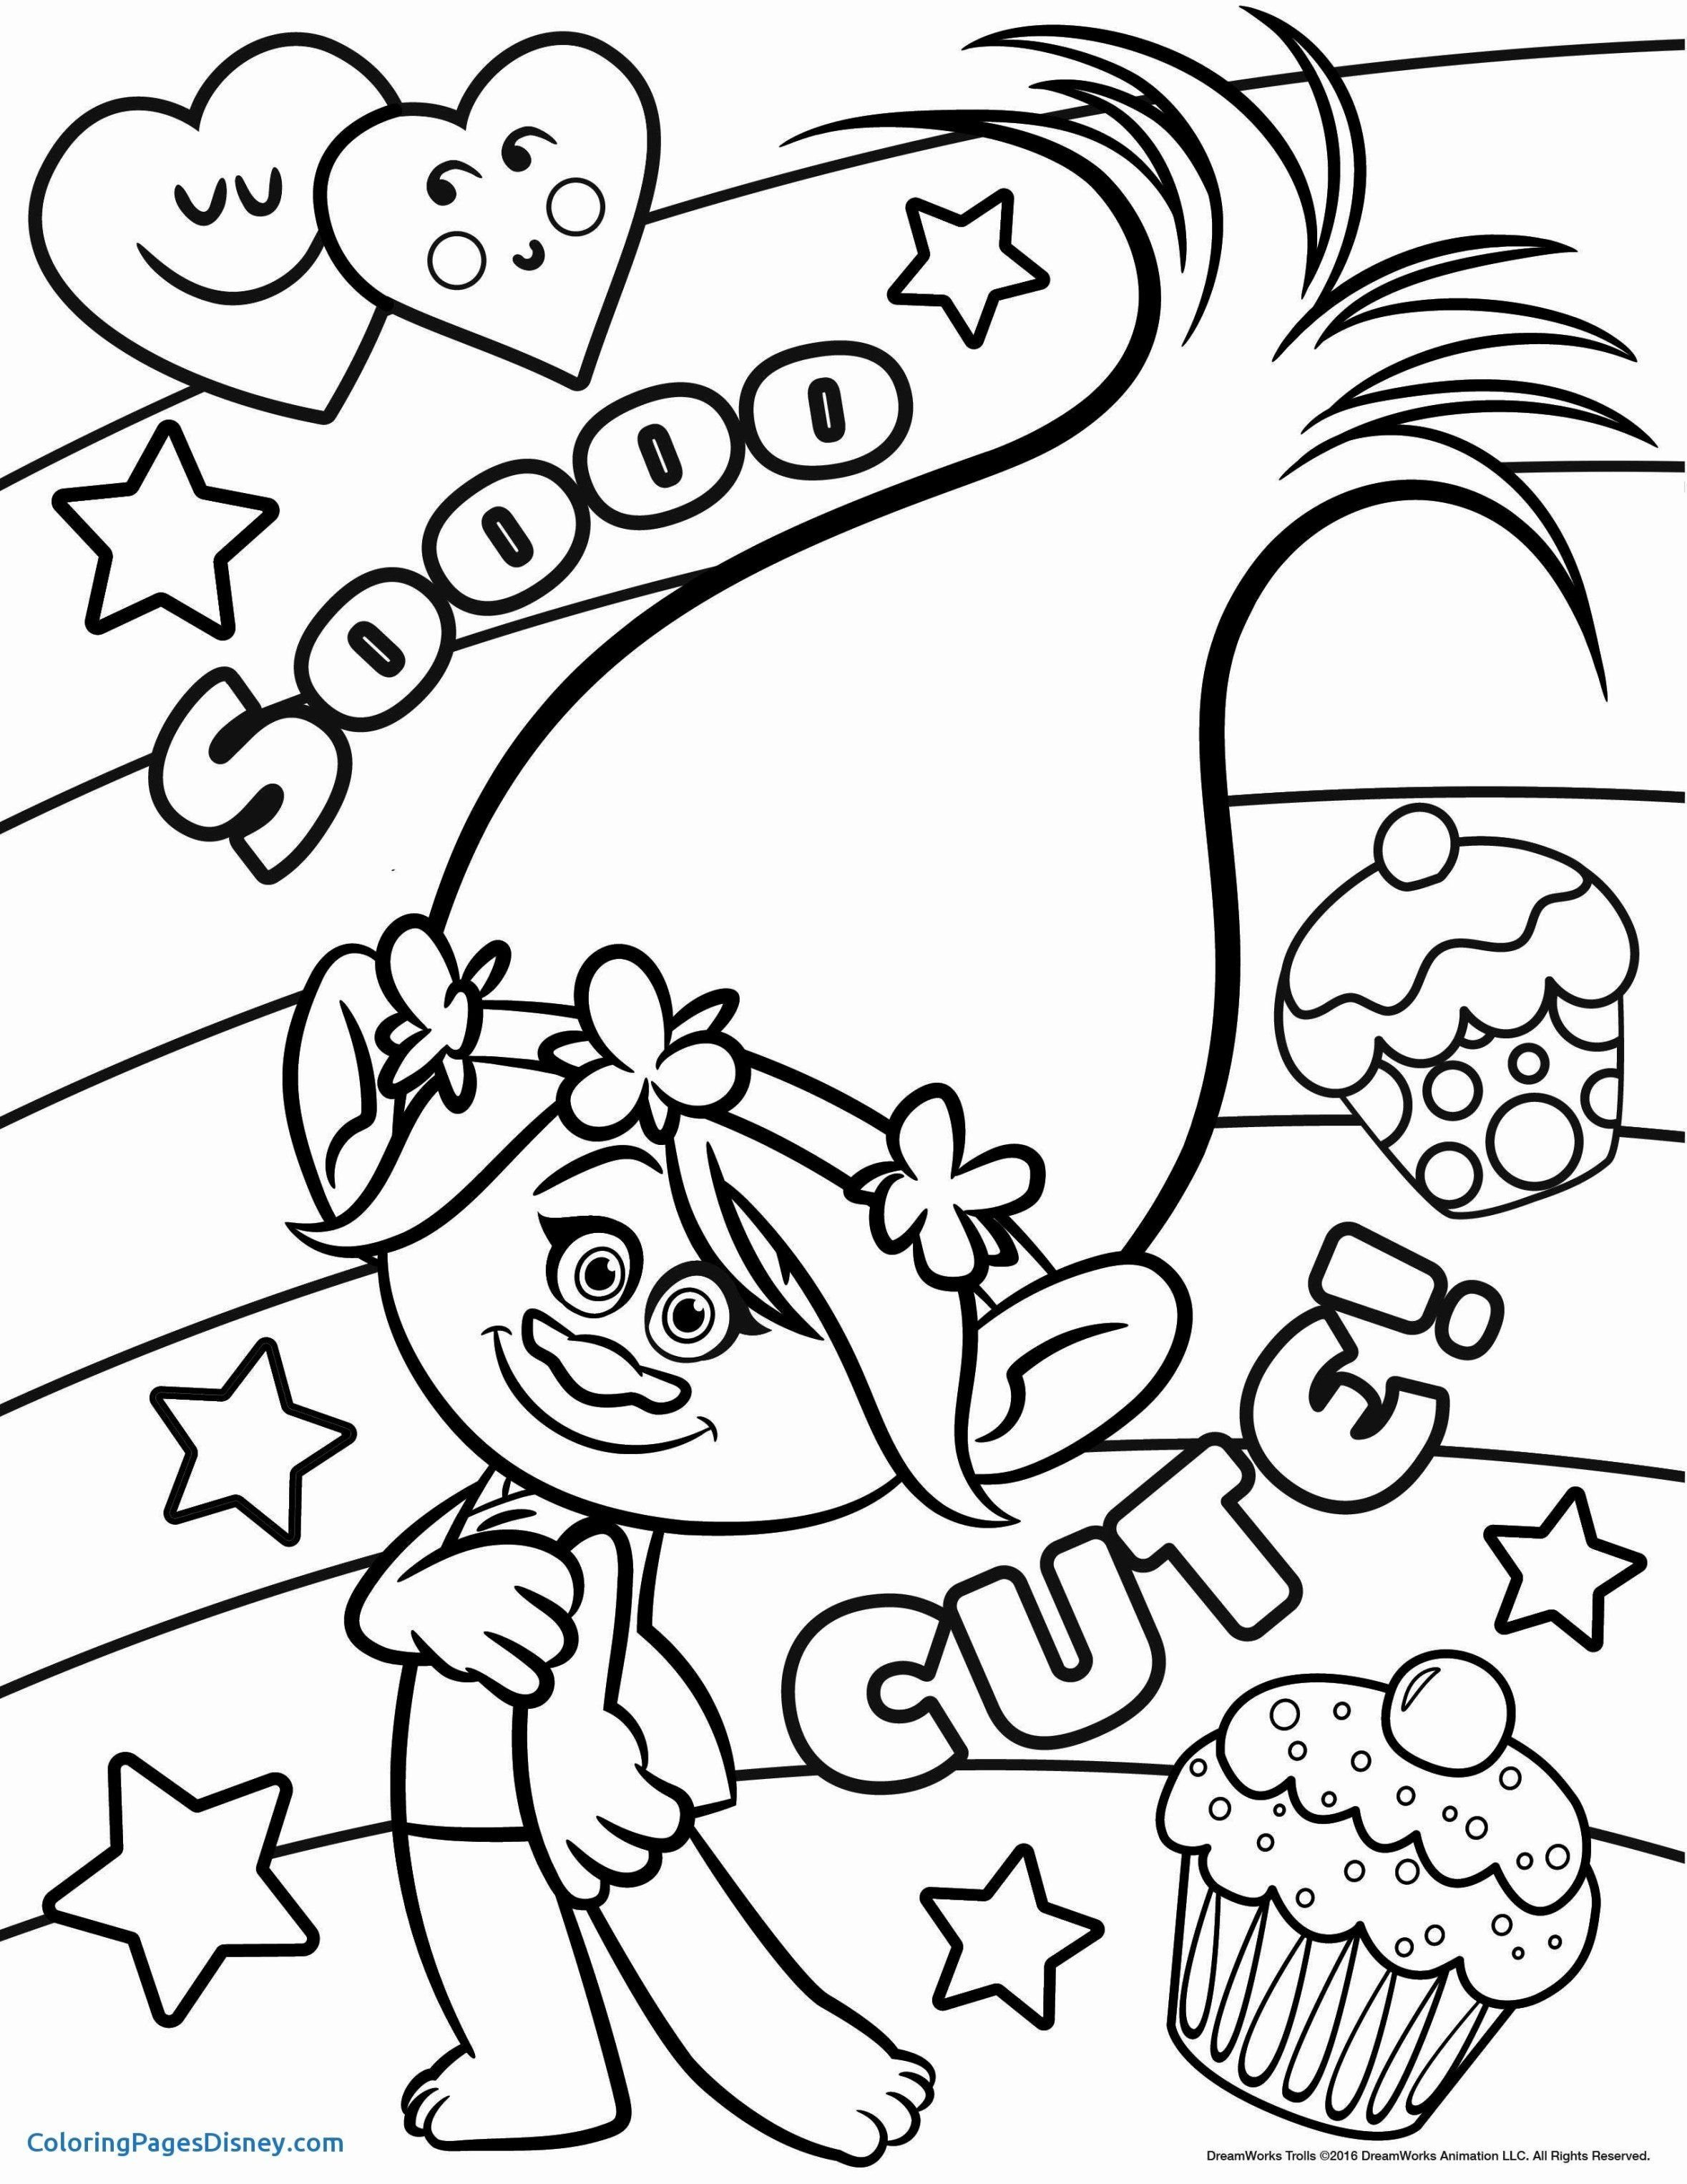 Cute Age 10 Cute Coloring Pages For Kids Disney